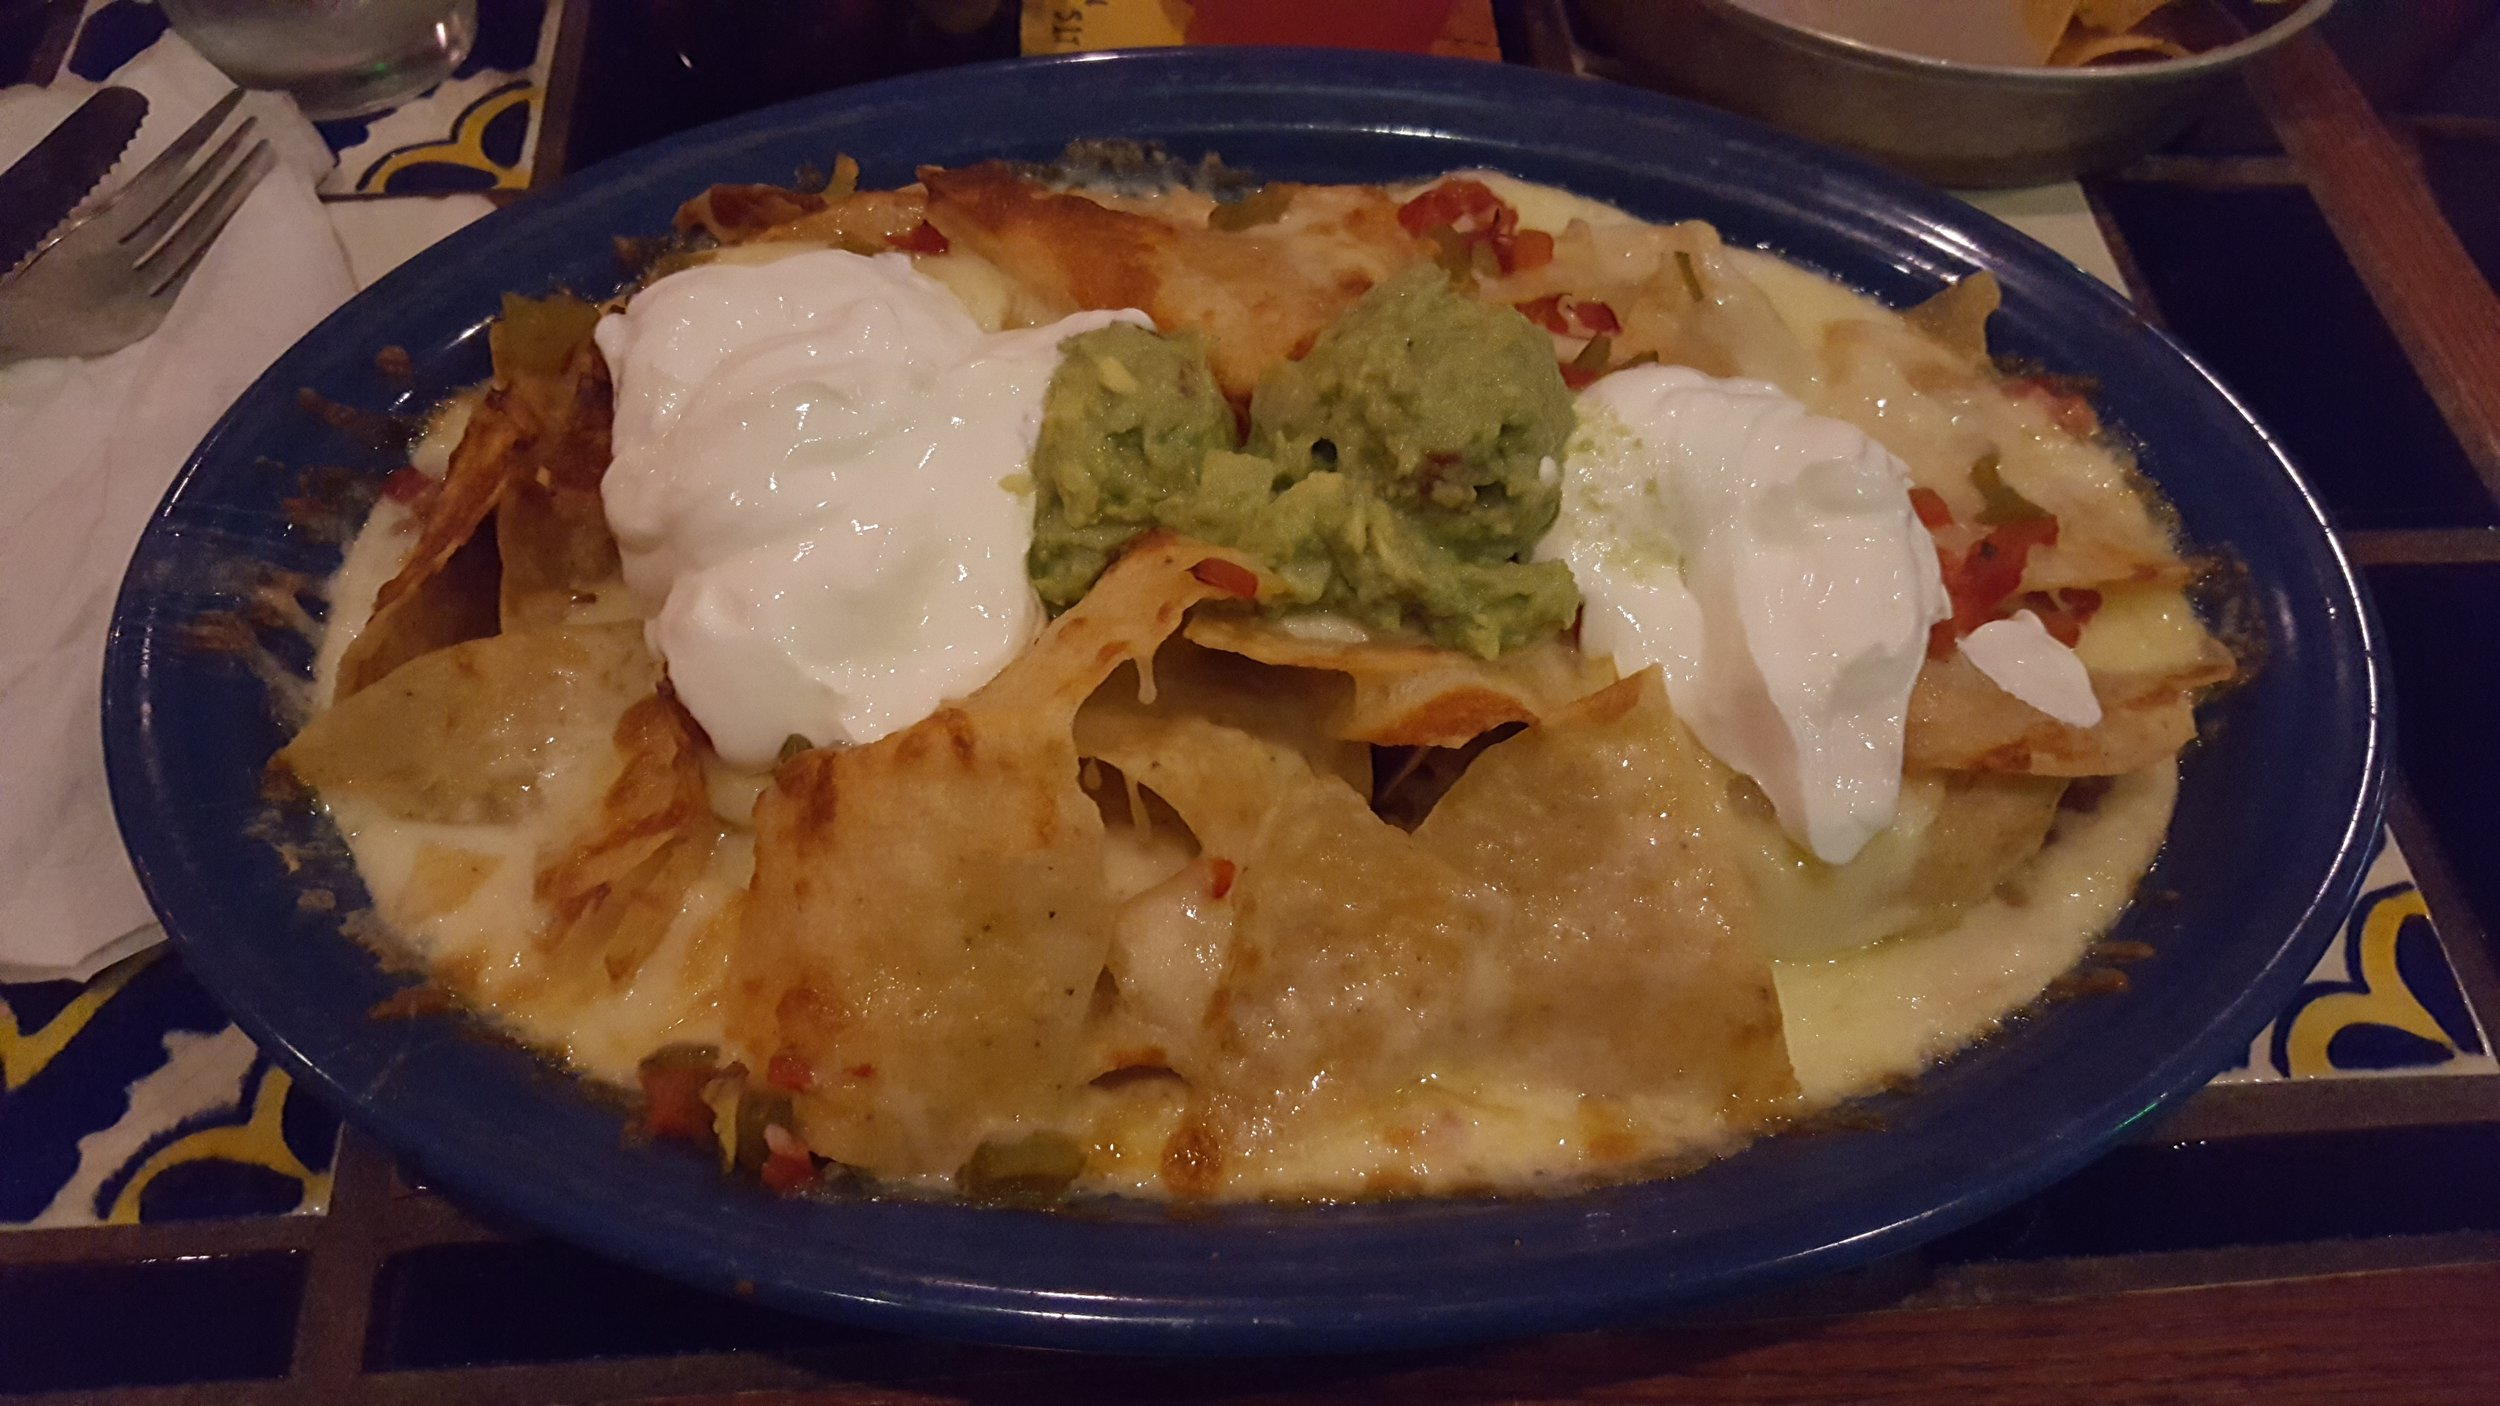 Chips, Cheese, Refried Beans, Red and Green Chilies, Guacamole, Sour Cream